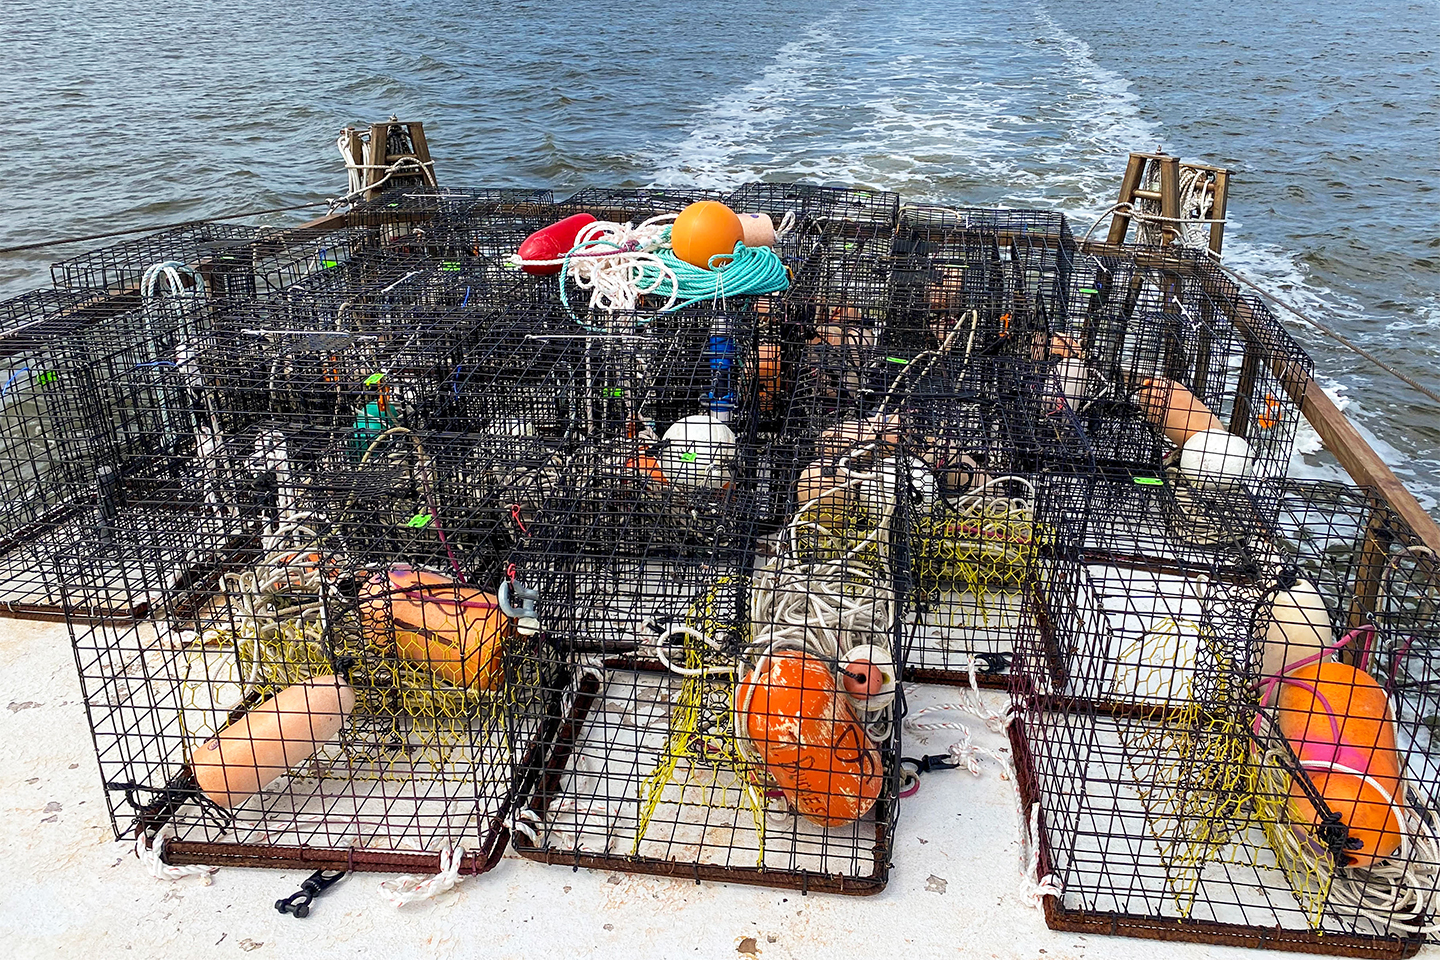 Ropeless fishing pods on the deck of a boat